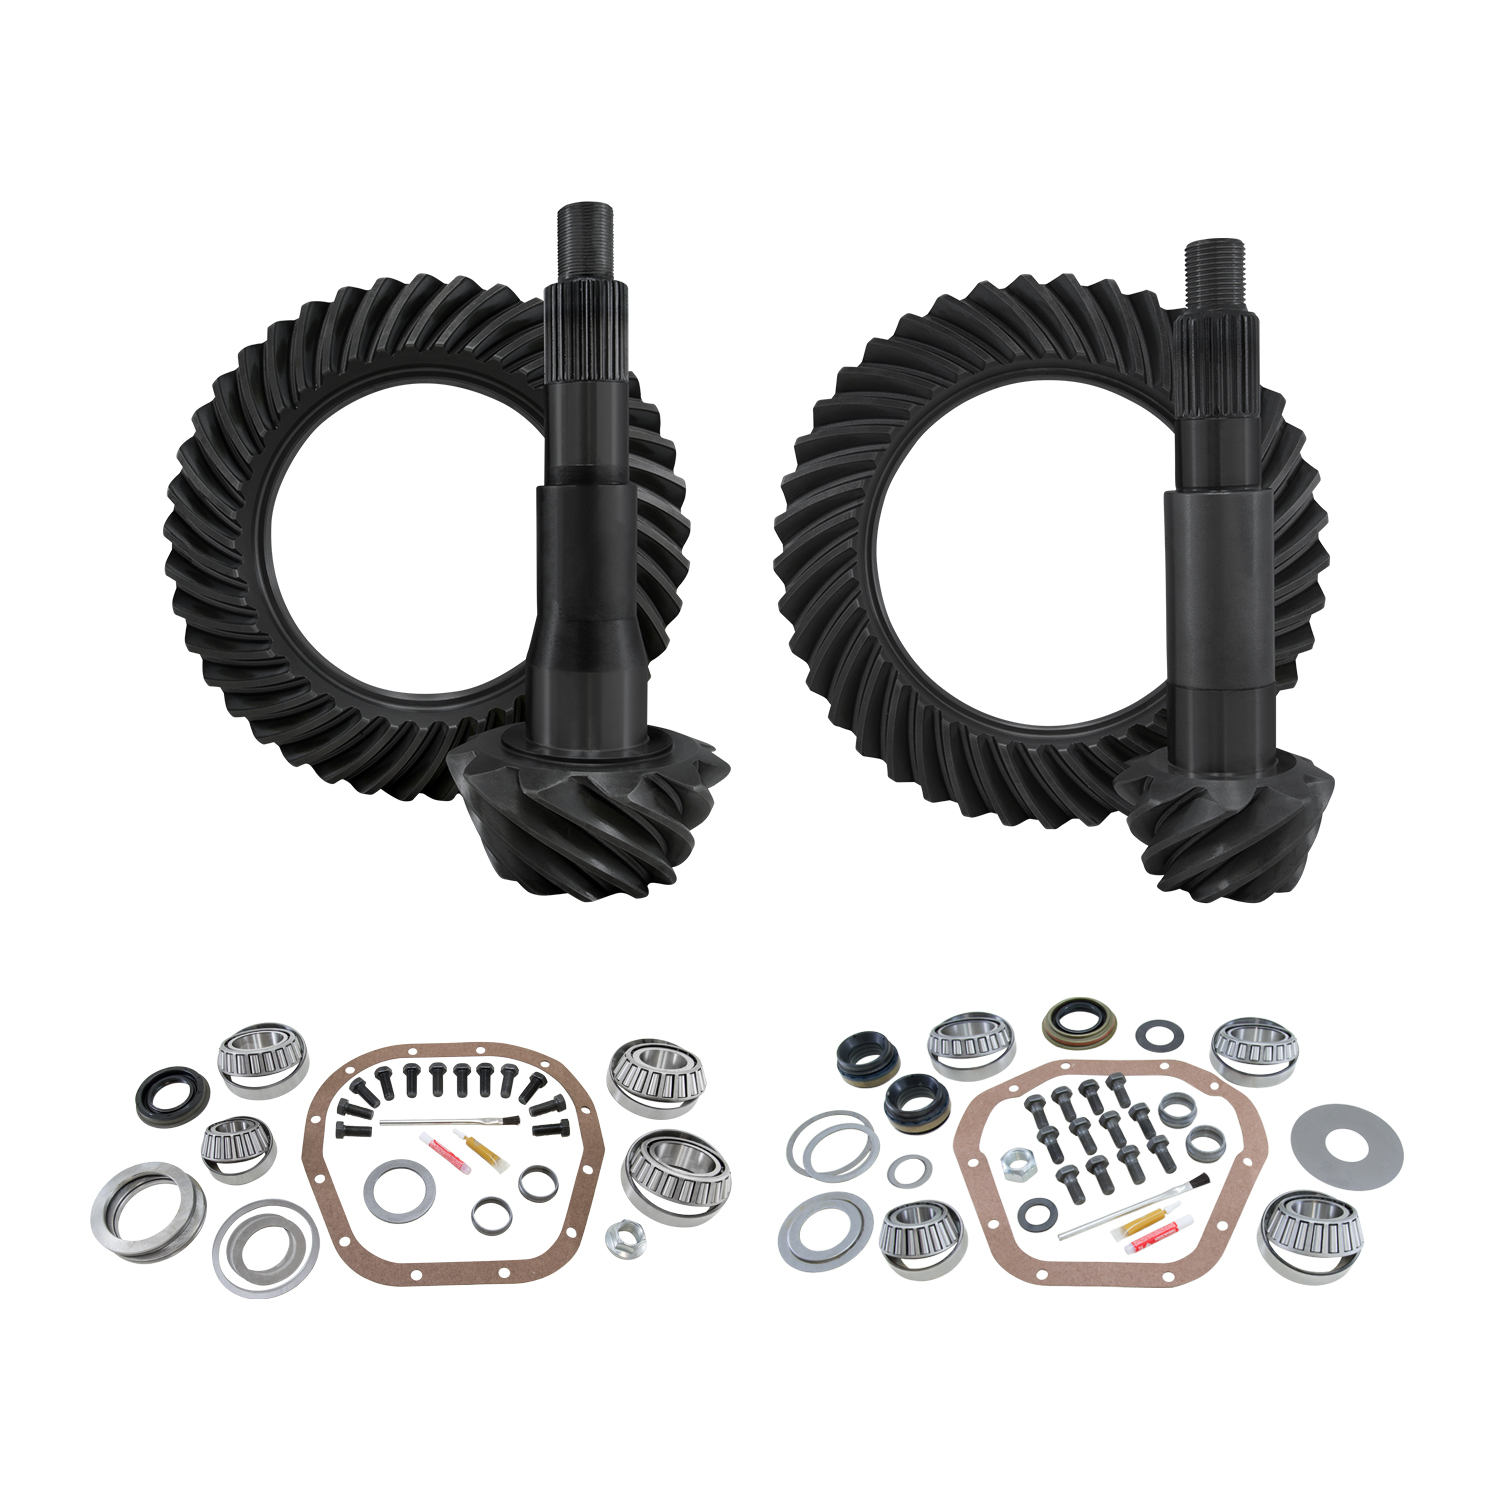 YGK128 - Yukon Complete Gear and Kit Pakage for 2000-2007 F250 and F350 Dana 60 Thick with 4:56 Gear Ratio